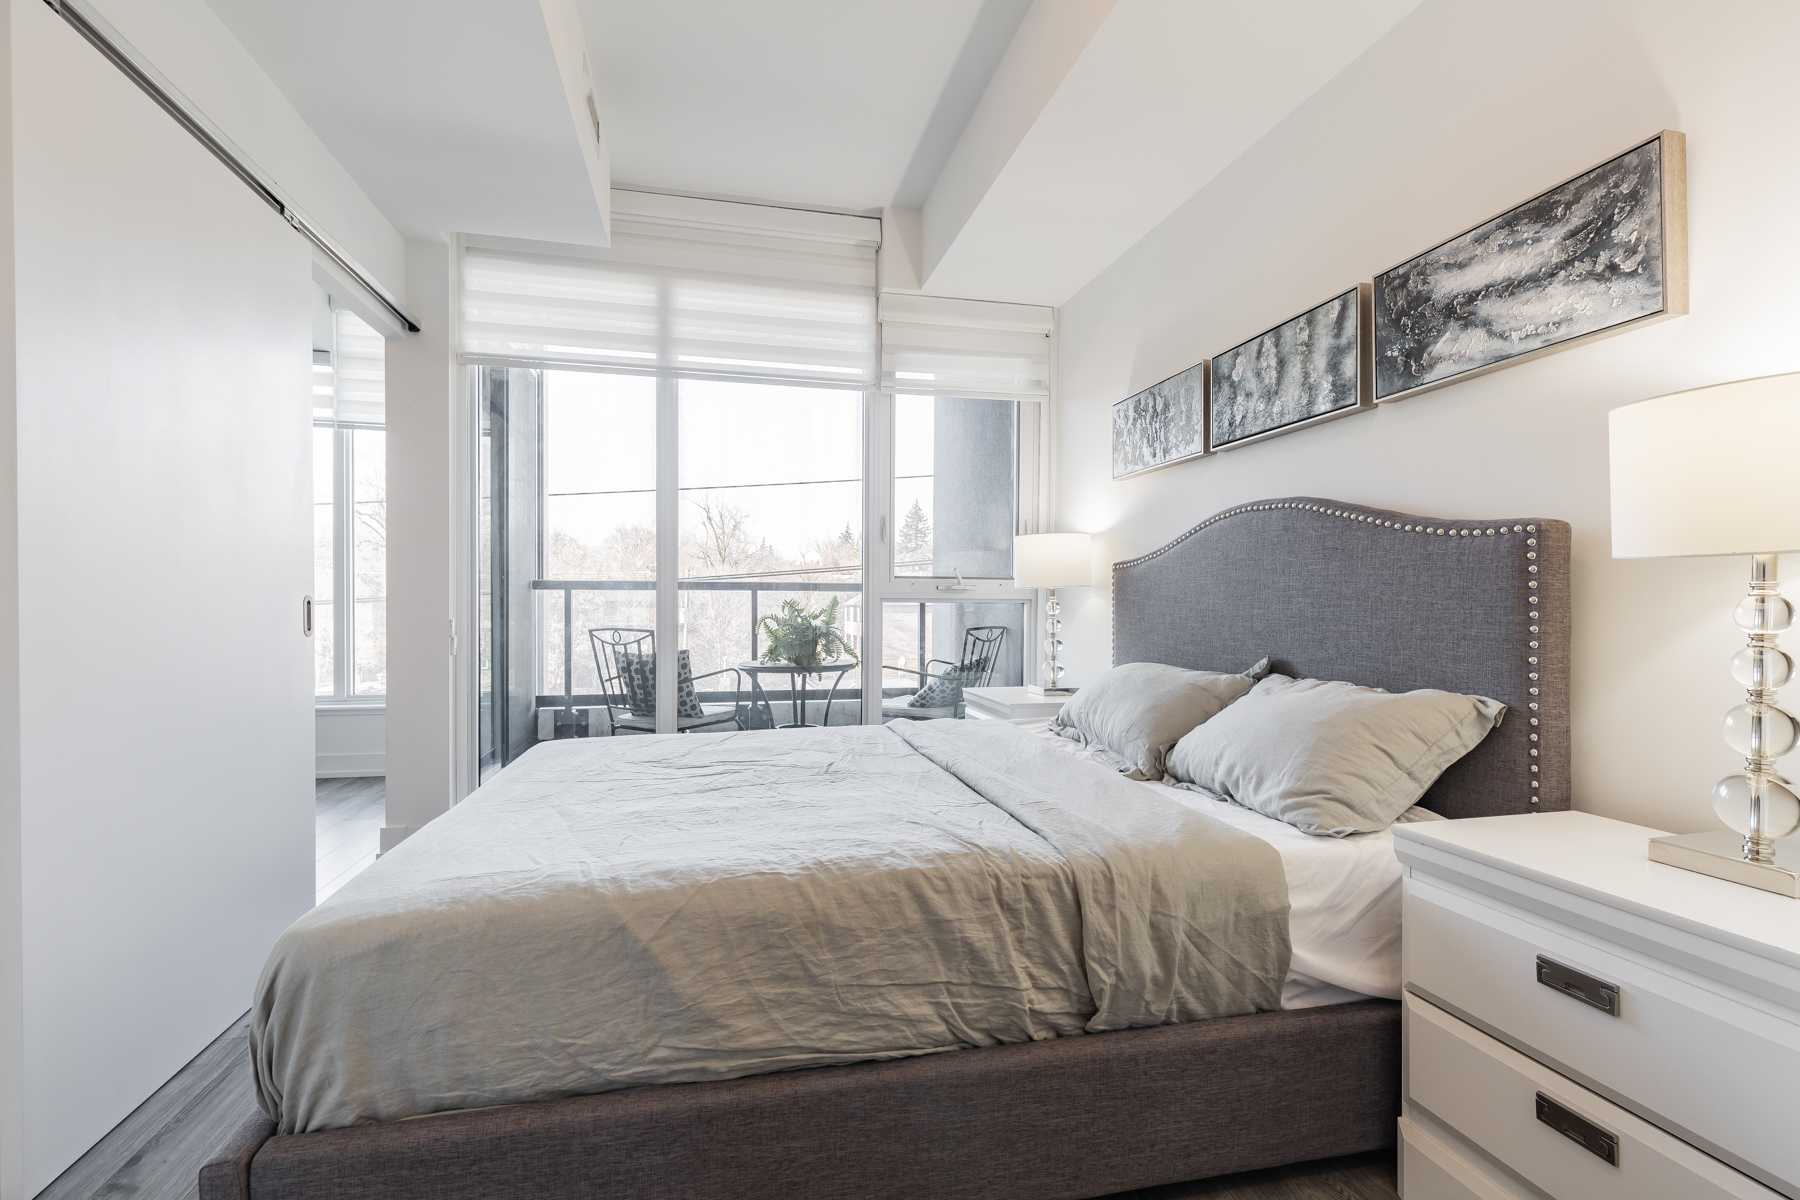 Brightly lit condo bedroom with bed overlooking balcony.